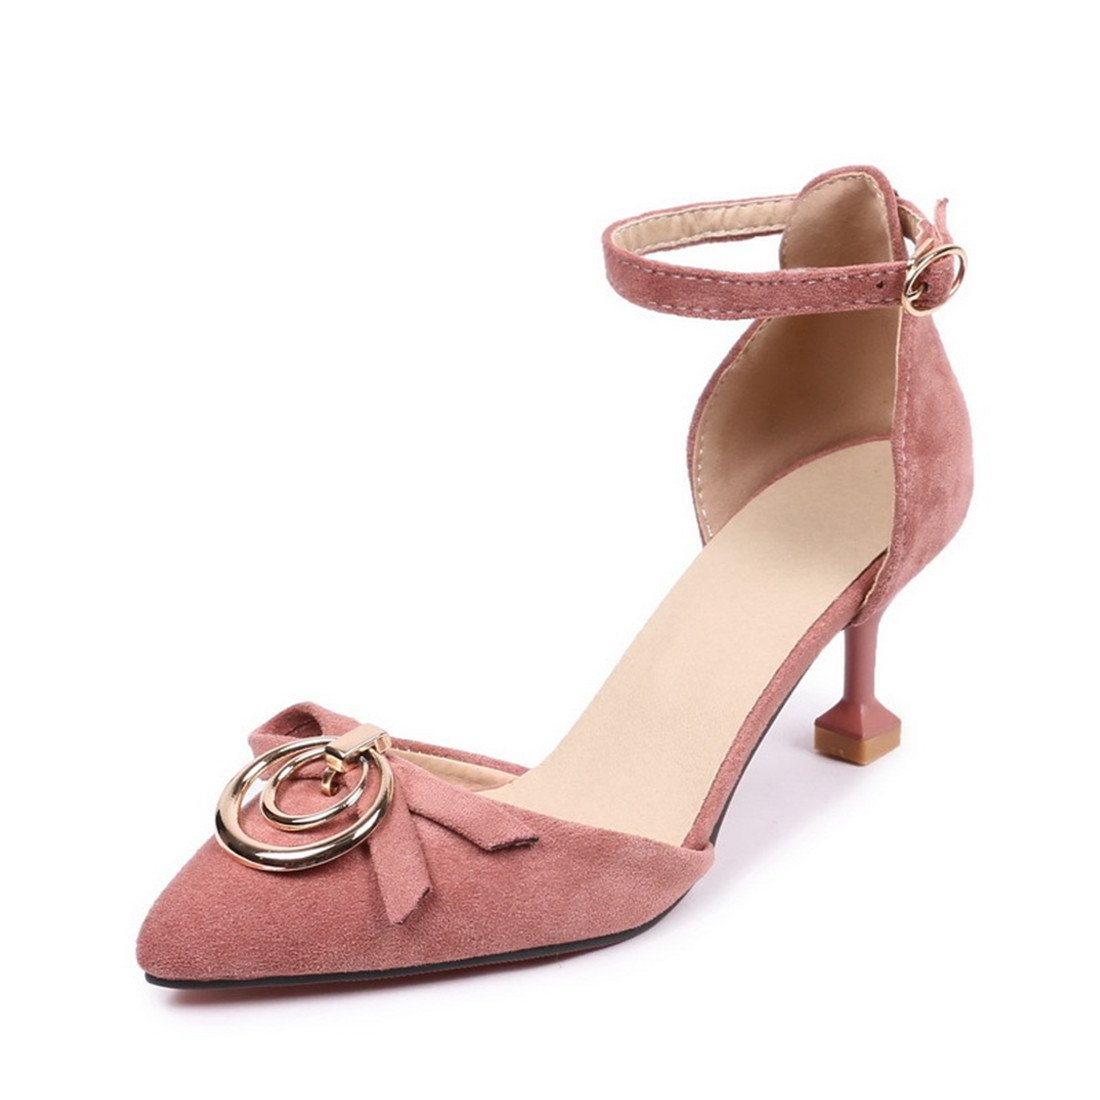 timeless design c5a94 b3066 Women s Summer Sandals Fashion Stiletto Heel Toe Toe Toe Ankle High Heels  Pumps Large Size Party